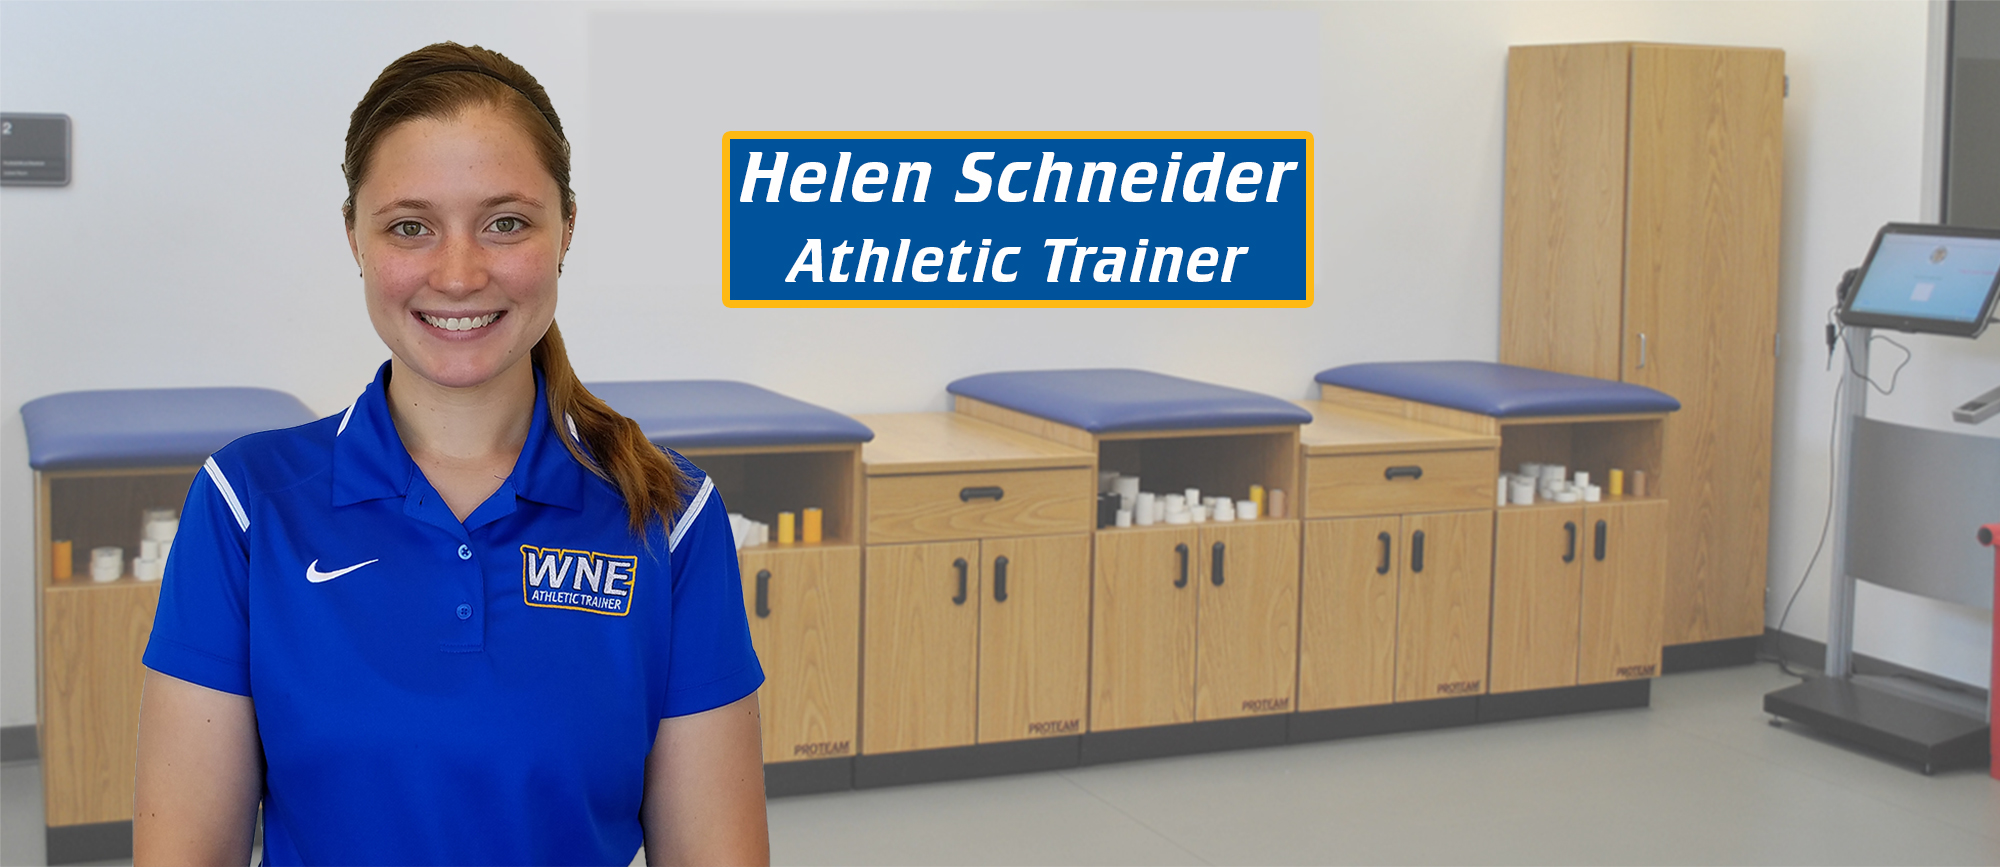 Helen Schneider Joins Sports Medicine Staff at Western New England